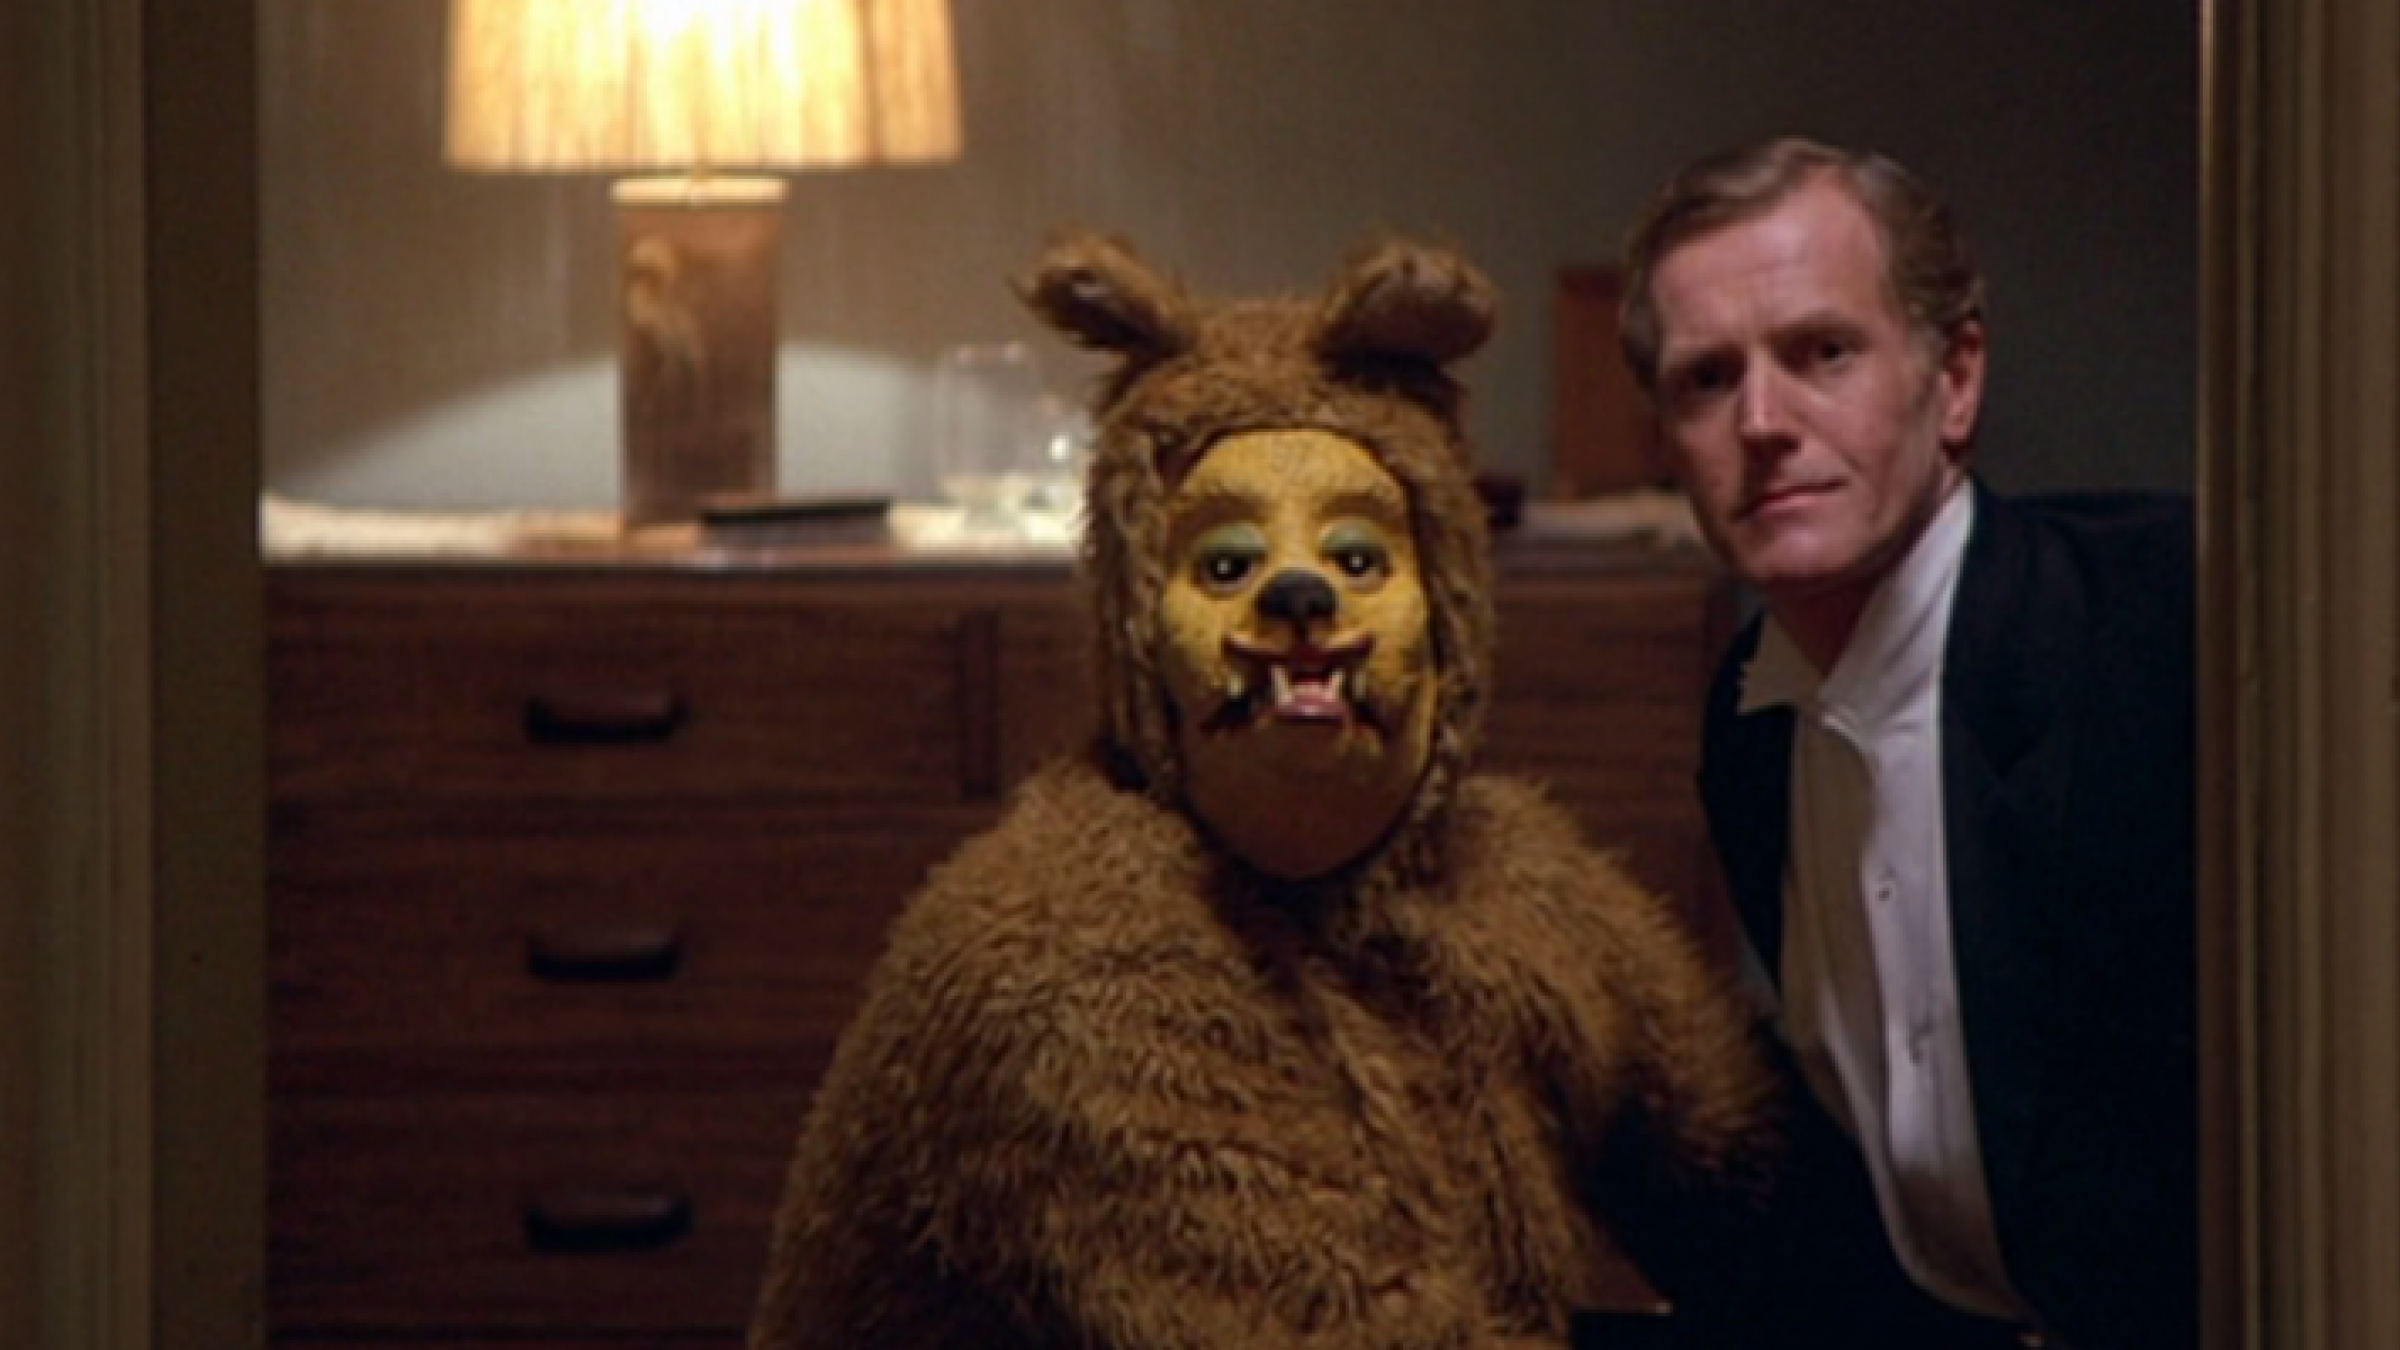 Why That Bear Performed Fellatio on That Guy in 'The Shining'